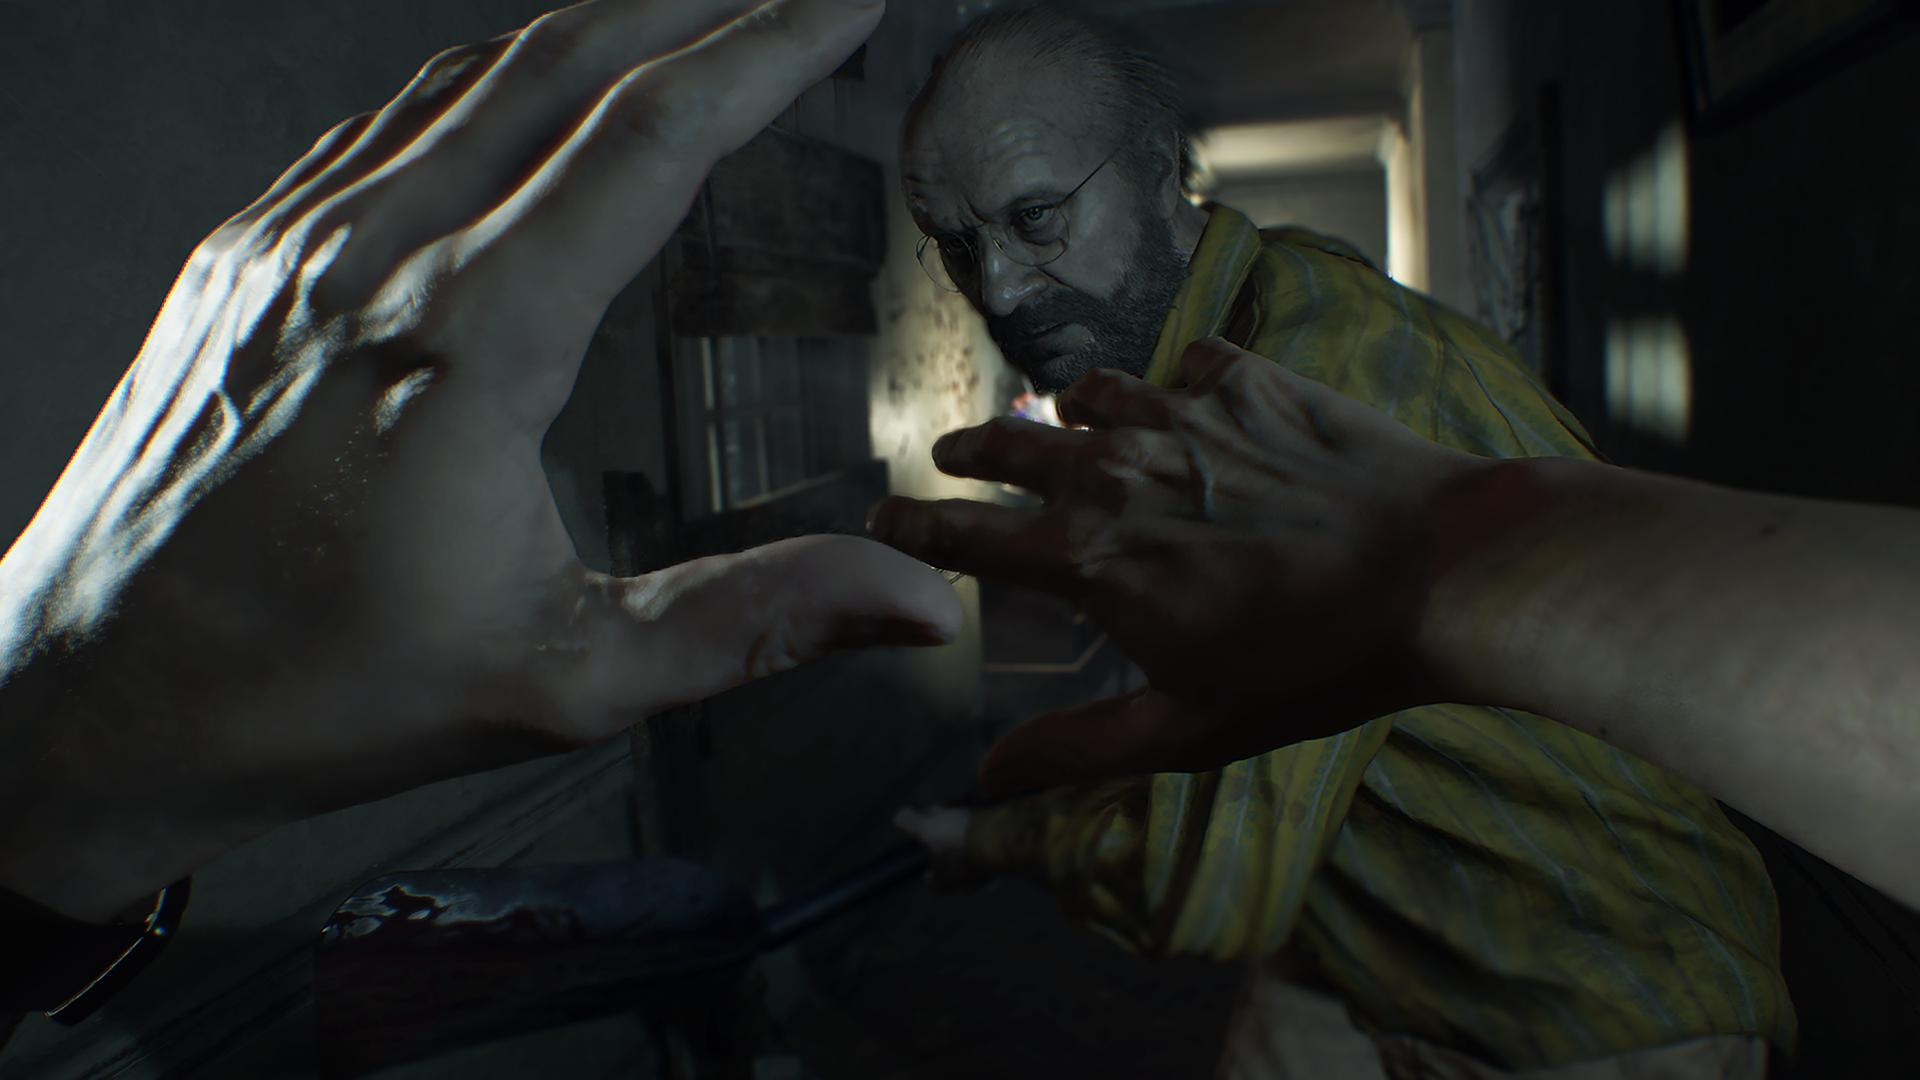 Resident Evil 7 two player